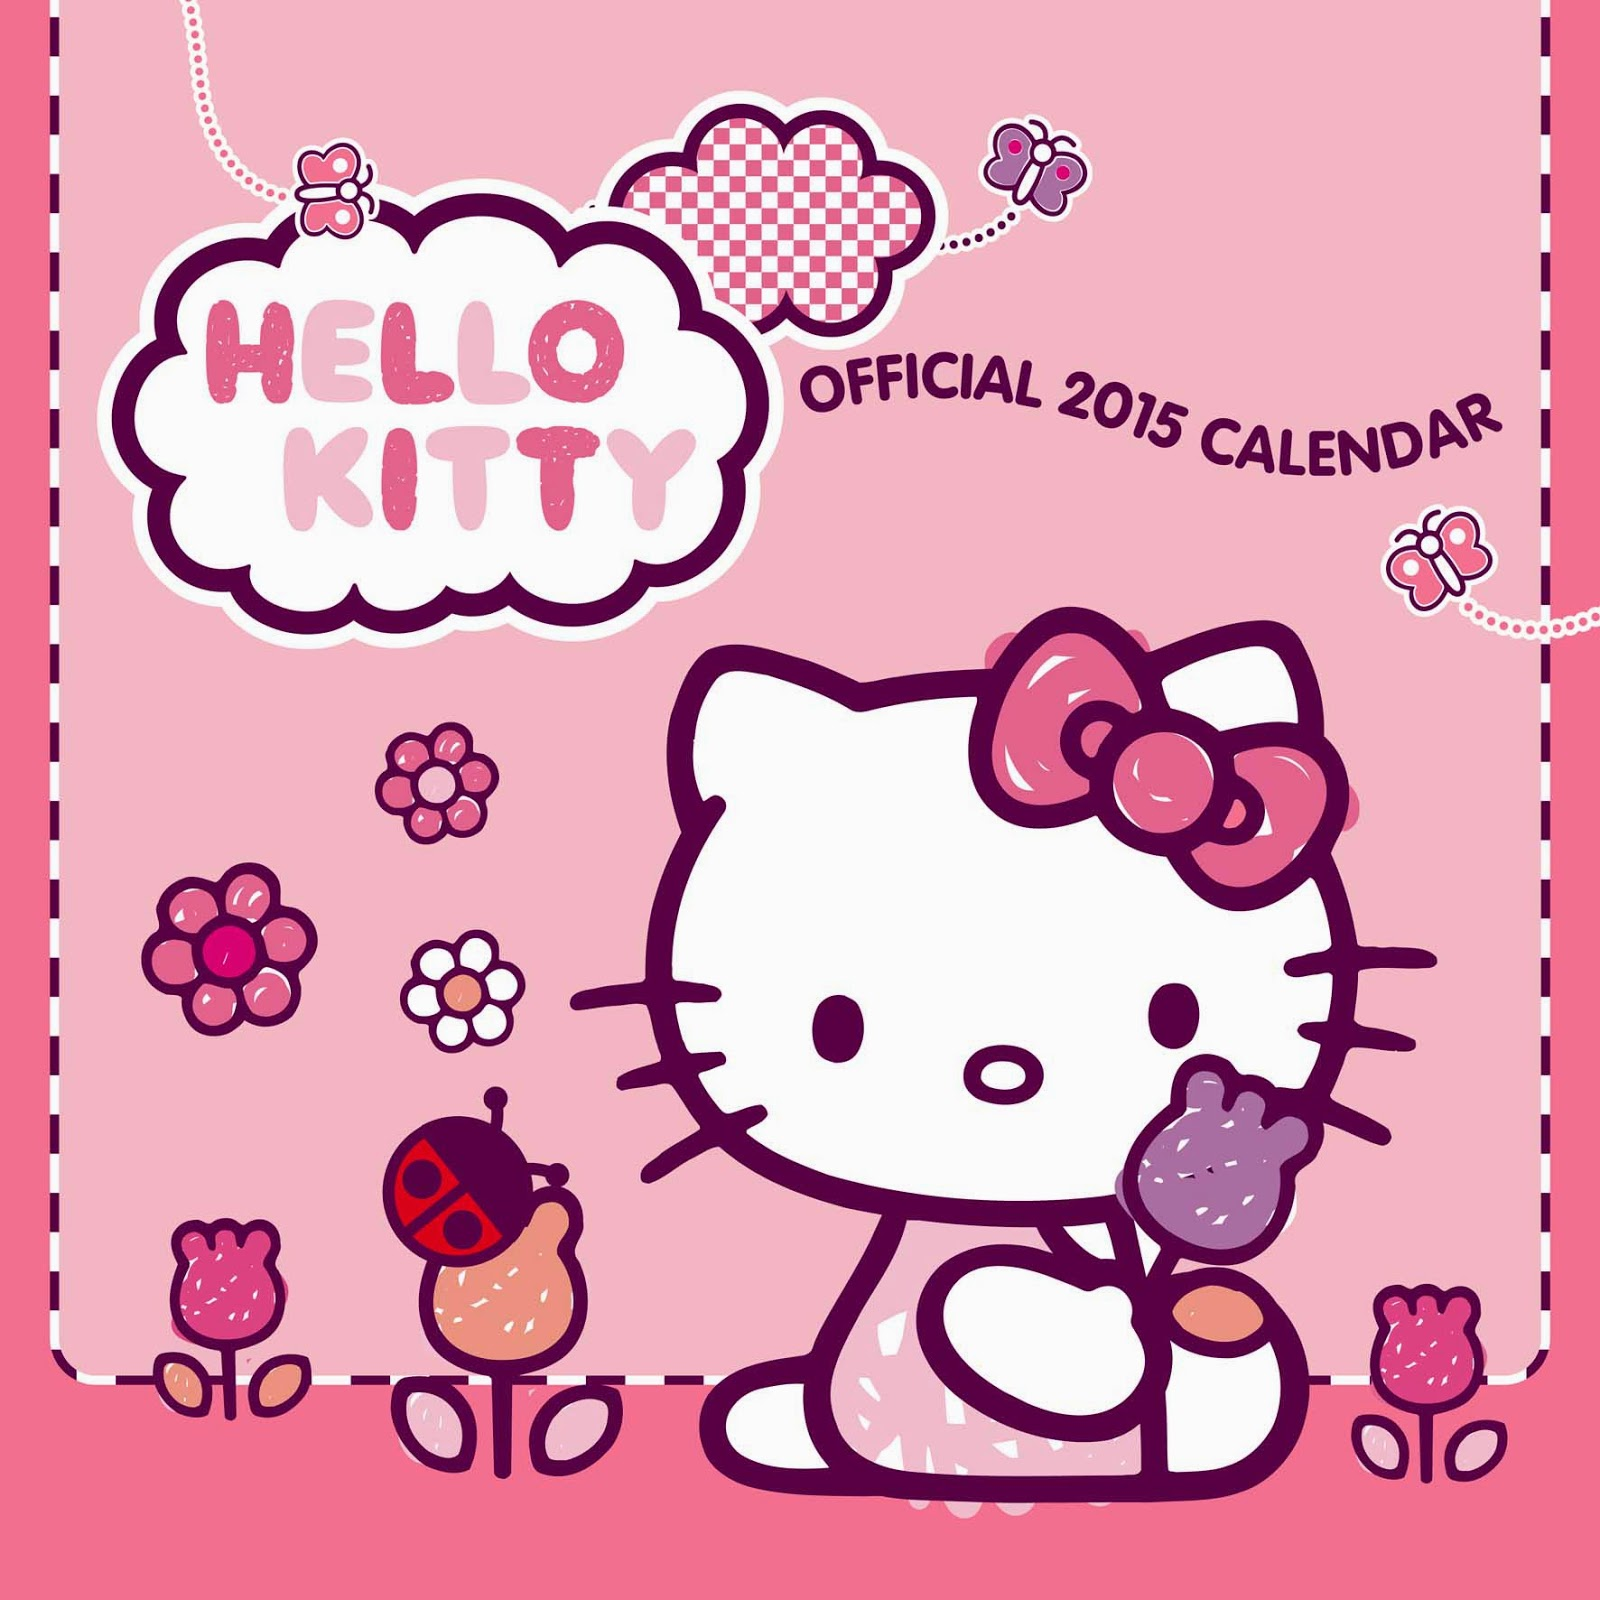 GAMBAR HELLO KITTY 2015 WALLPAPER LUCU Gambar Hello Kitty